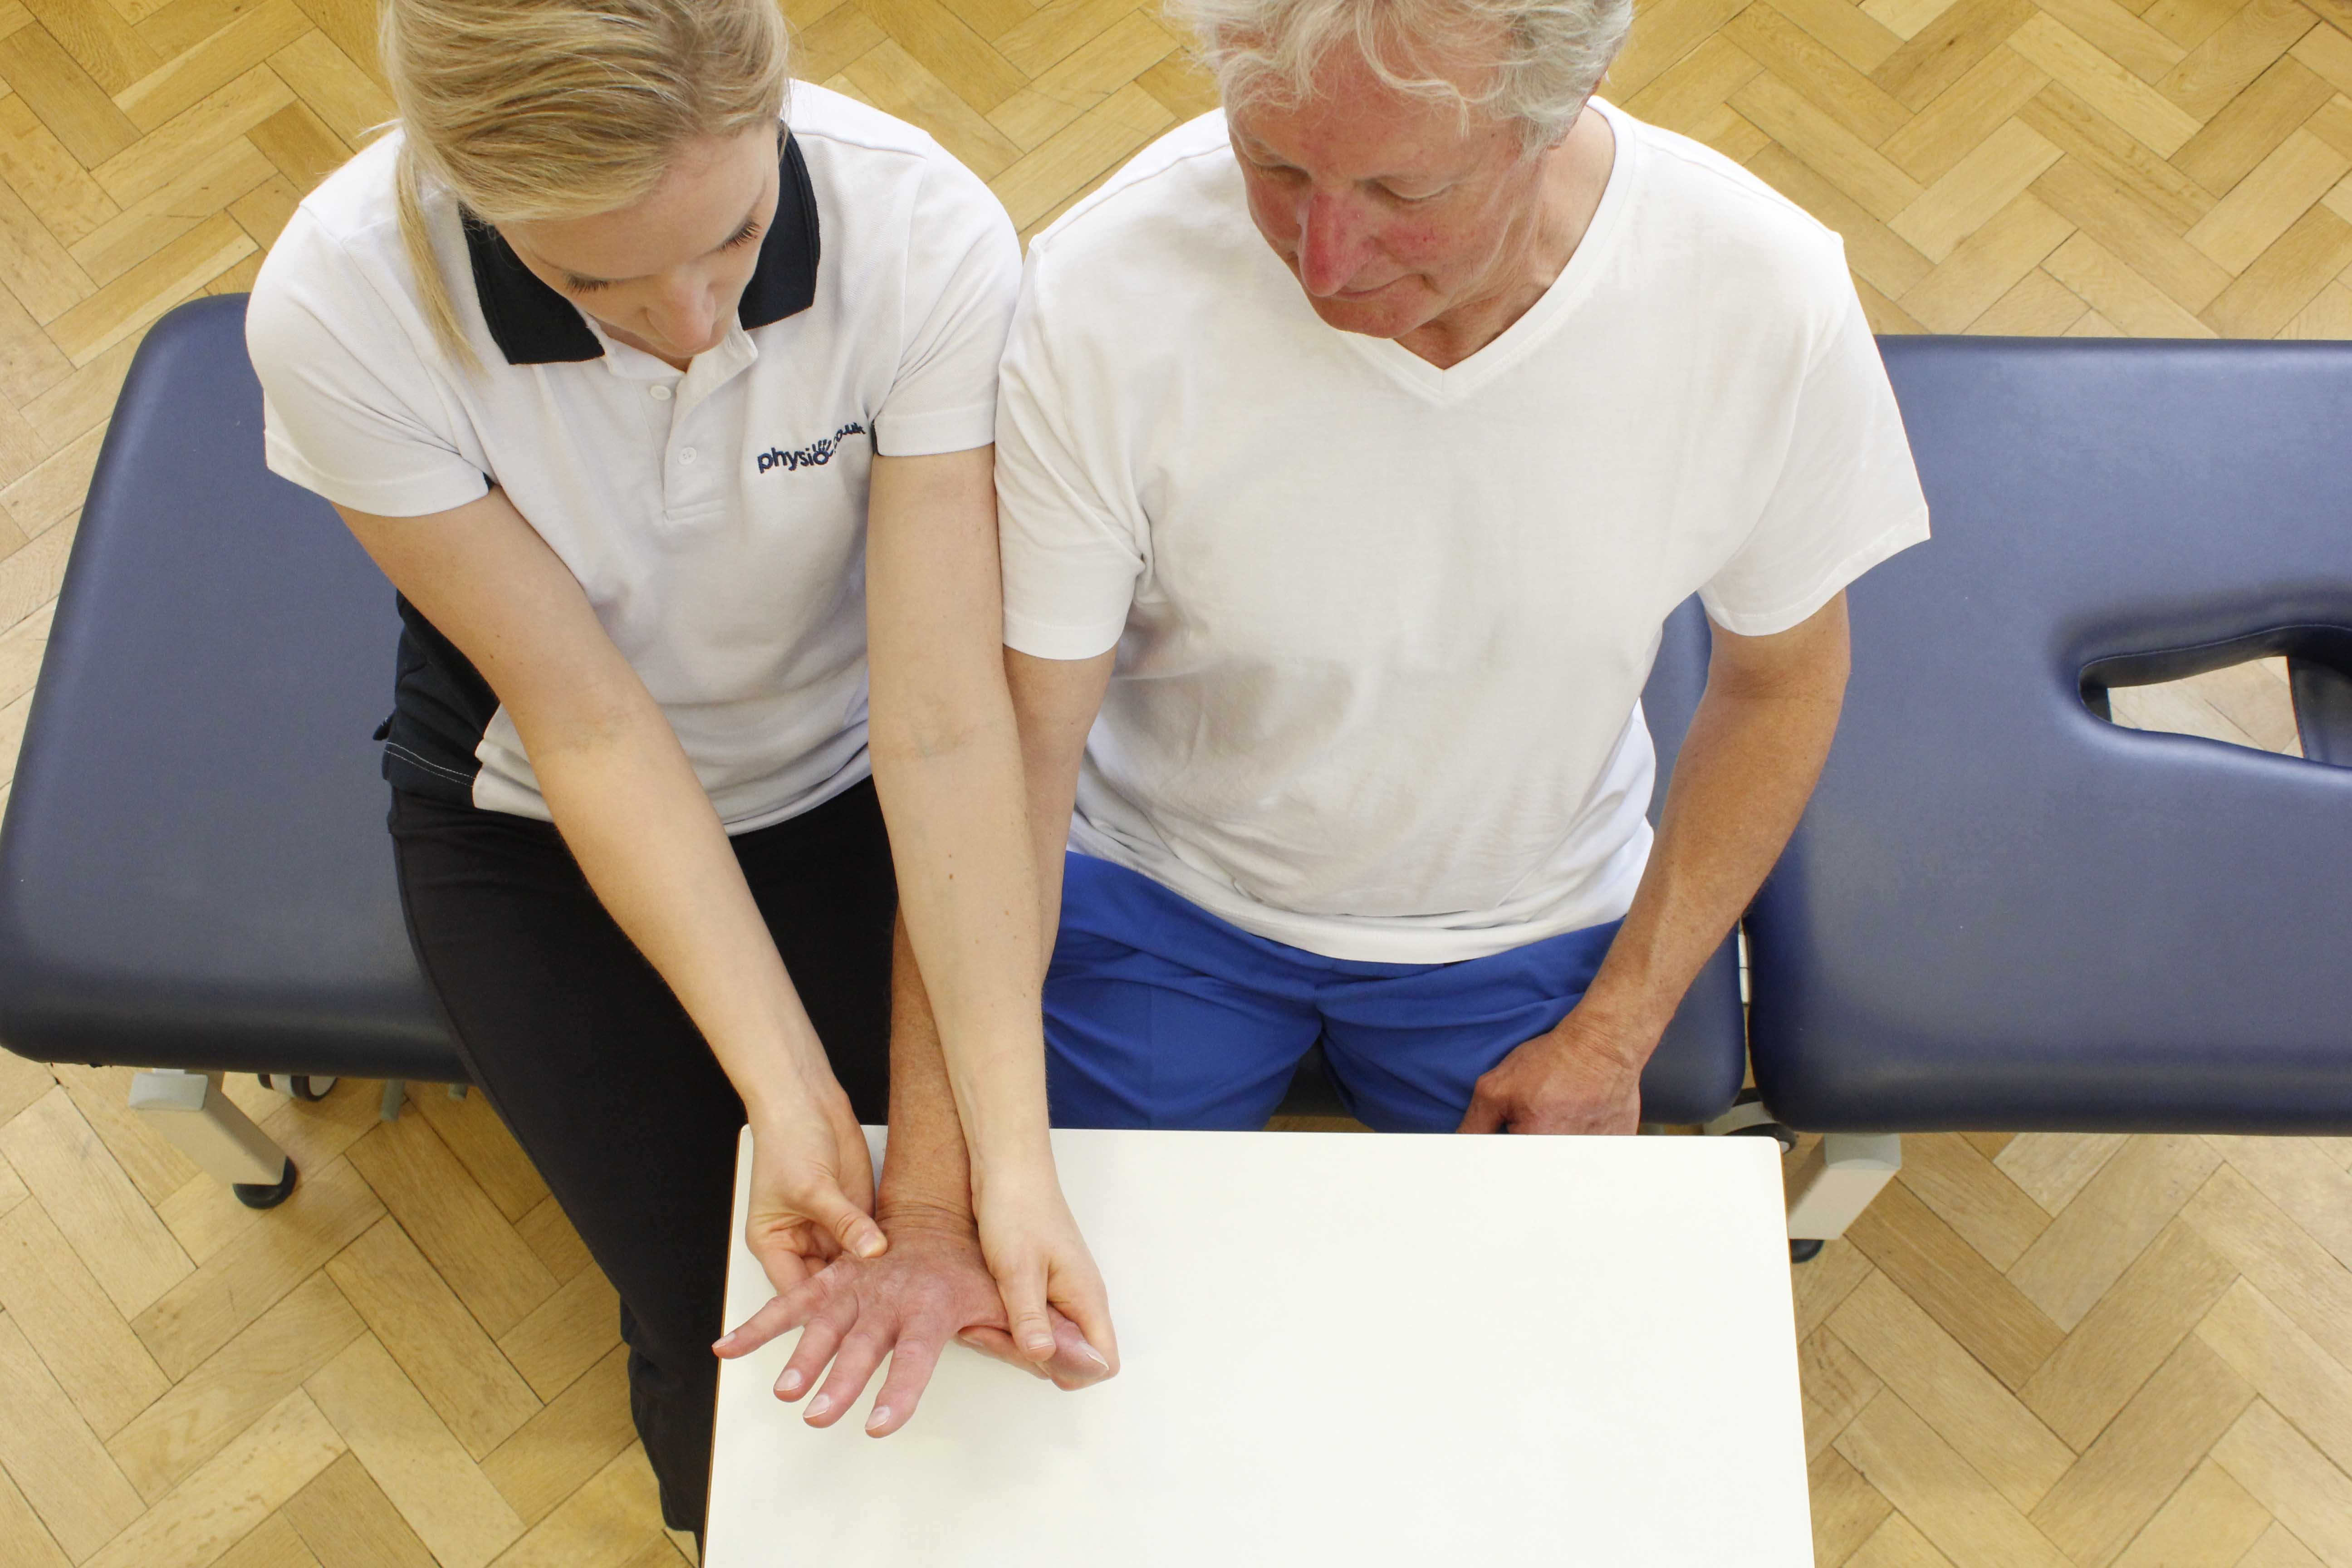 Hand and wrist mobilisations performed by an experienced Physiotherapist